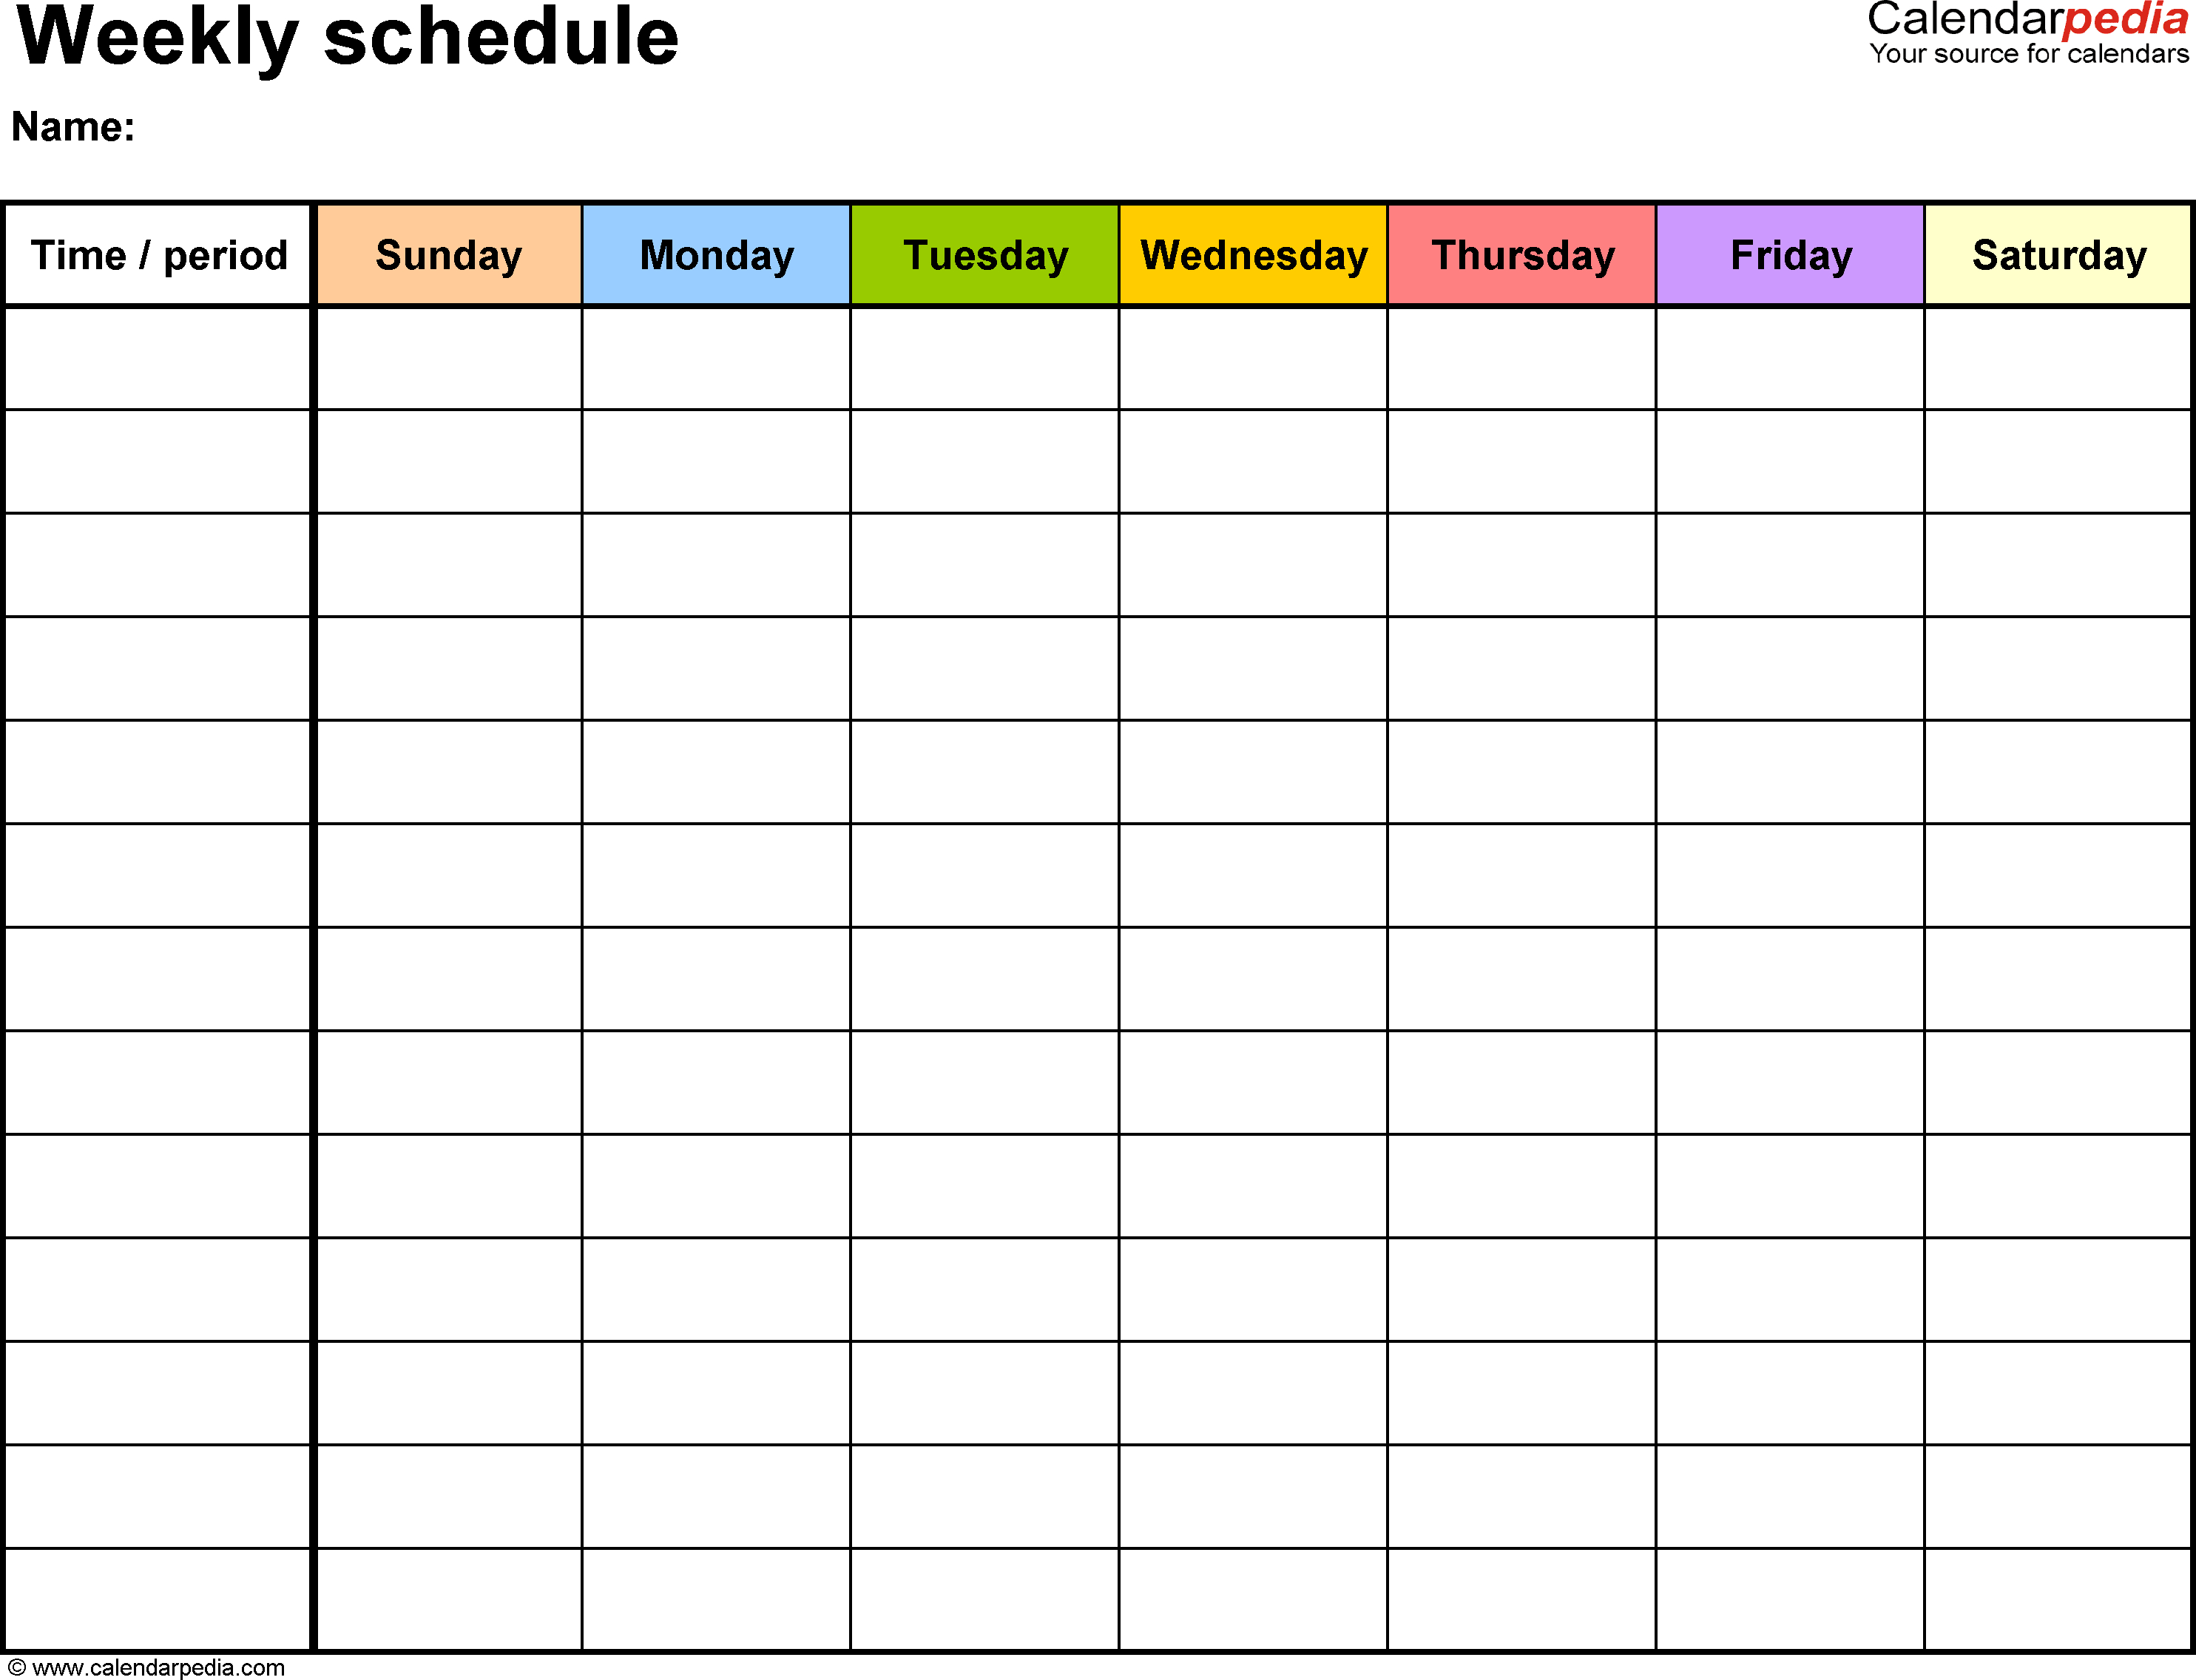 Schedule Template Weekly Calendar Editable Free Templates For Word in Free Calendar With Time Slots Template